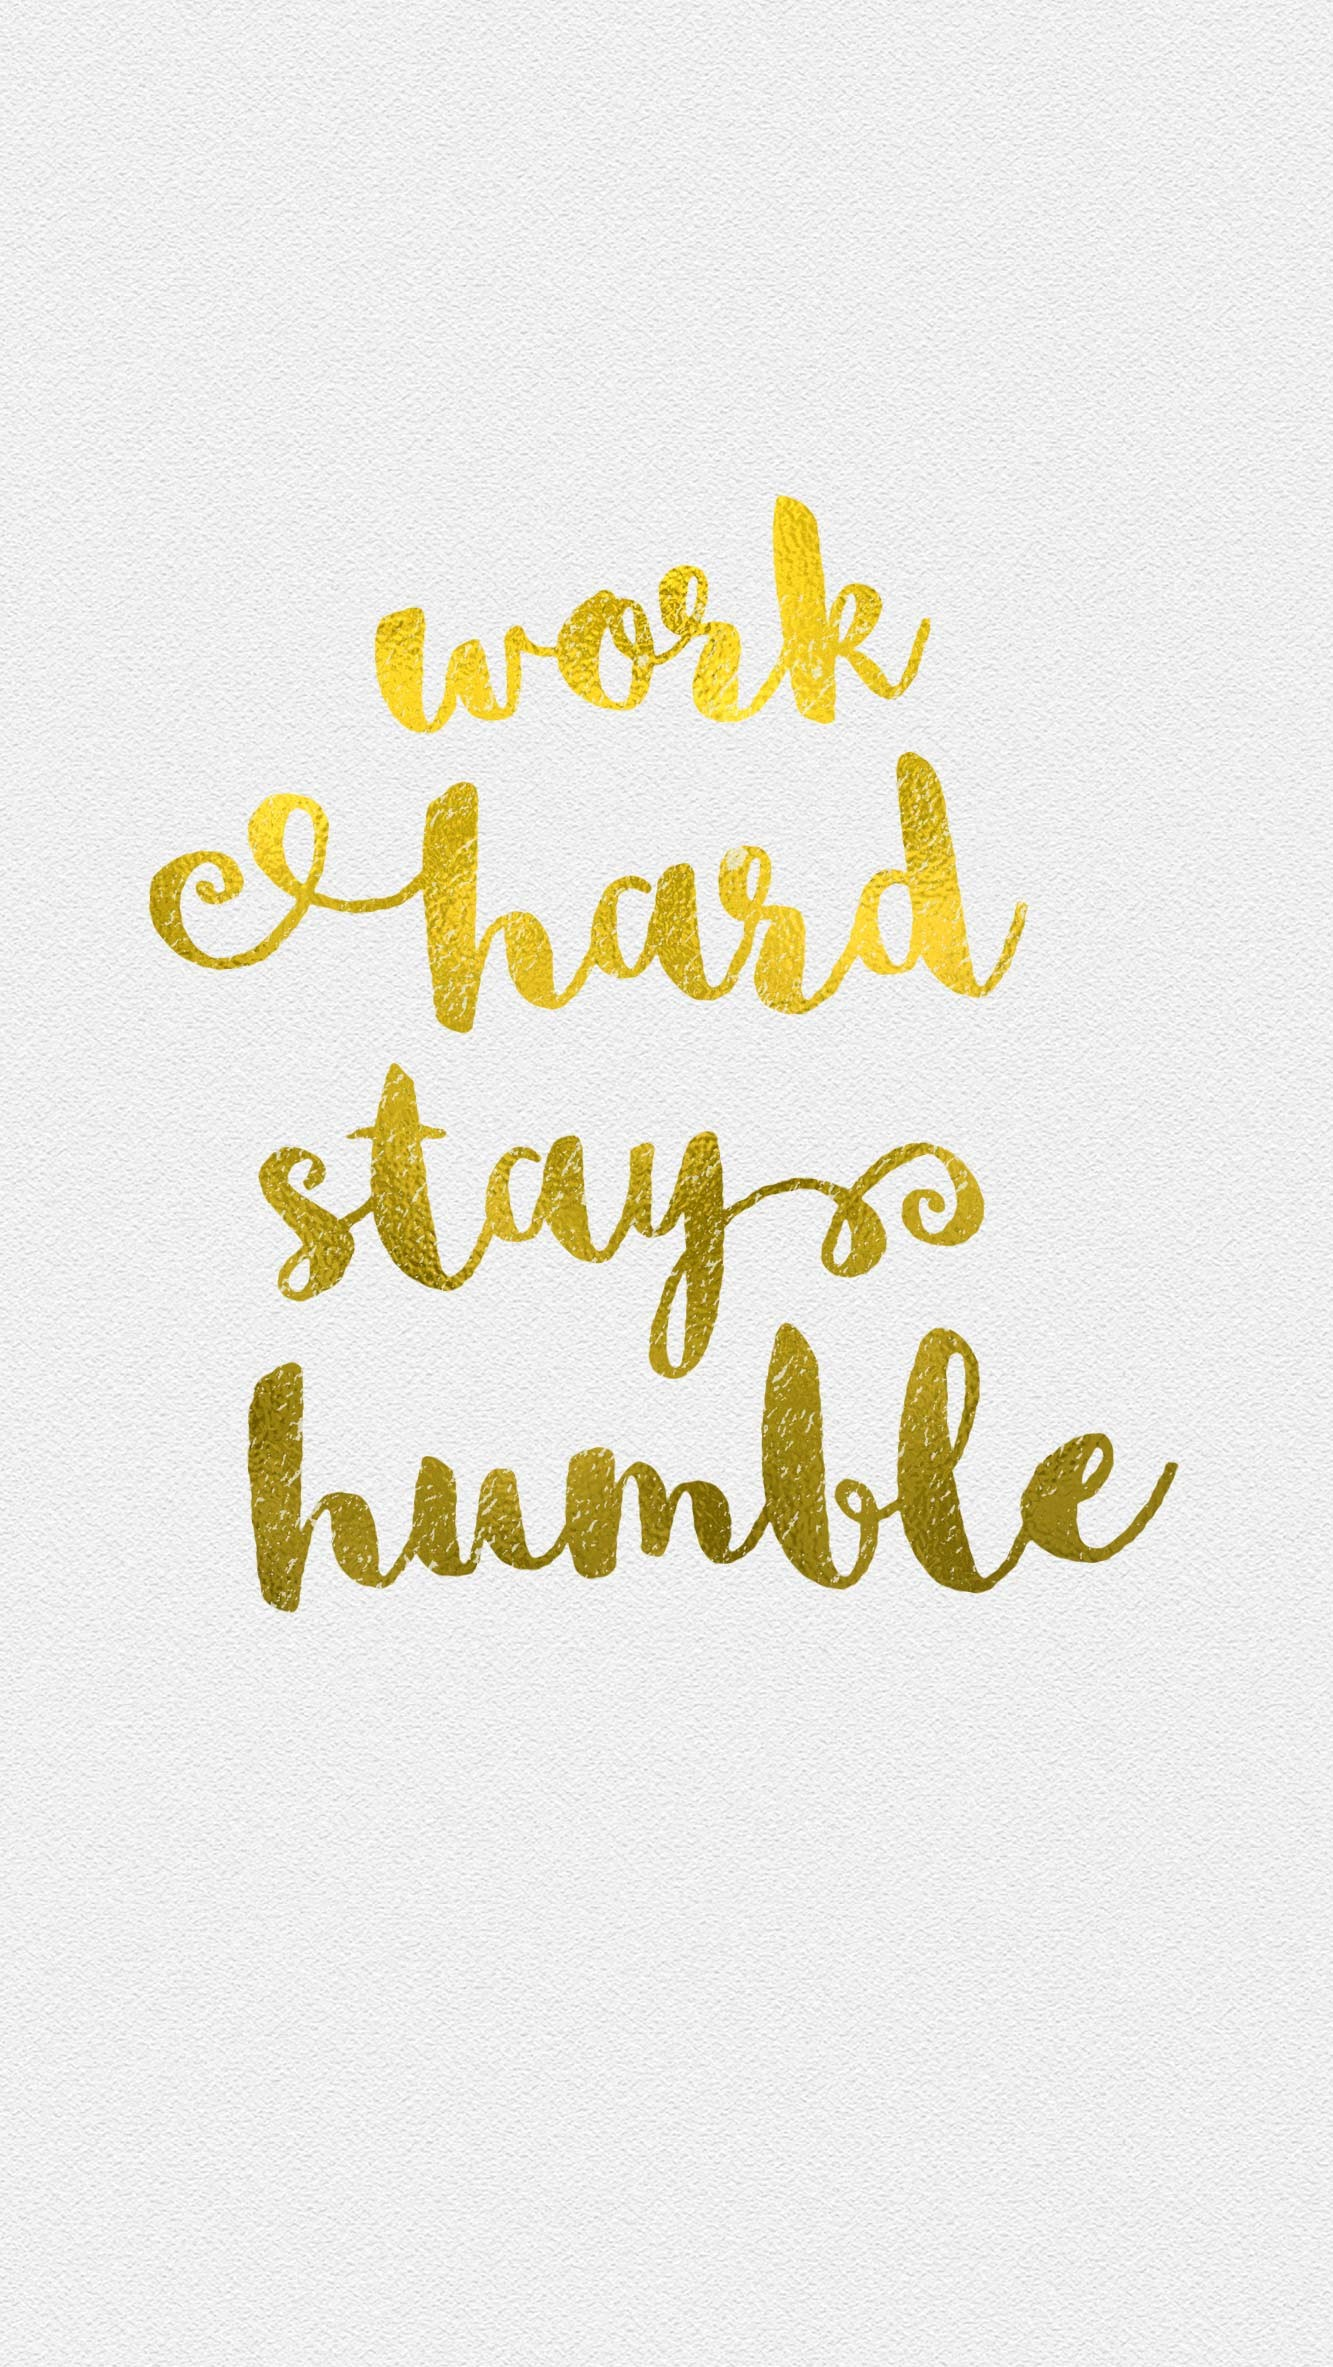 1333x2367 White gld Work Humble iphone wallpaper phone background lock screen | quote  me please | Pinterest | Screens, Wallpaper and Phone